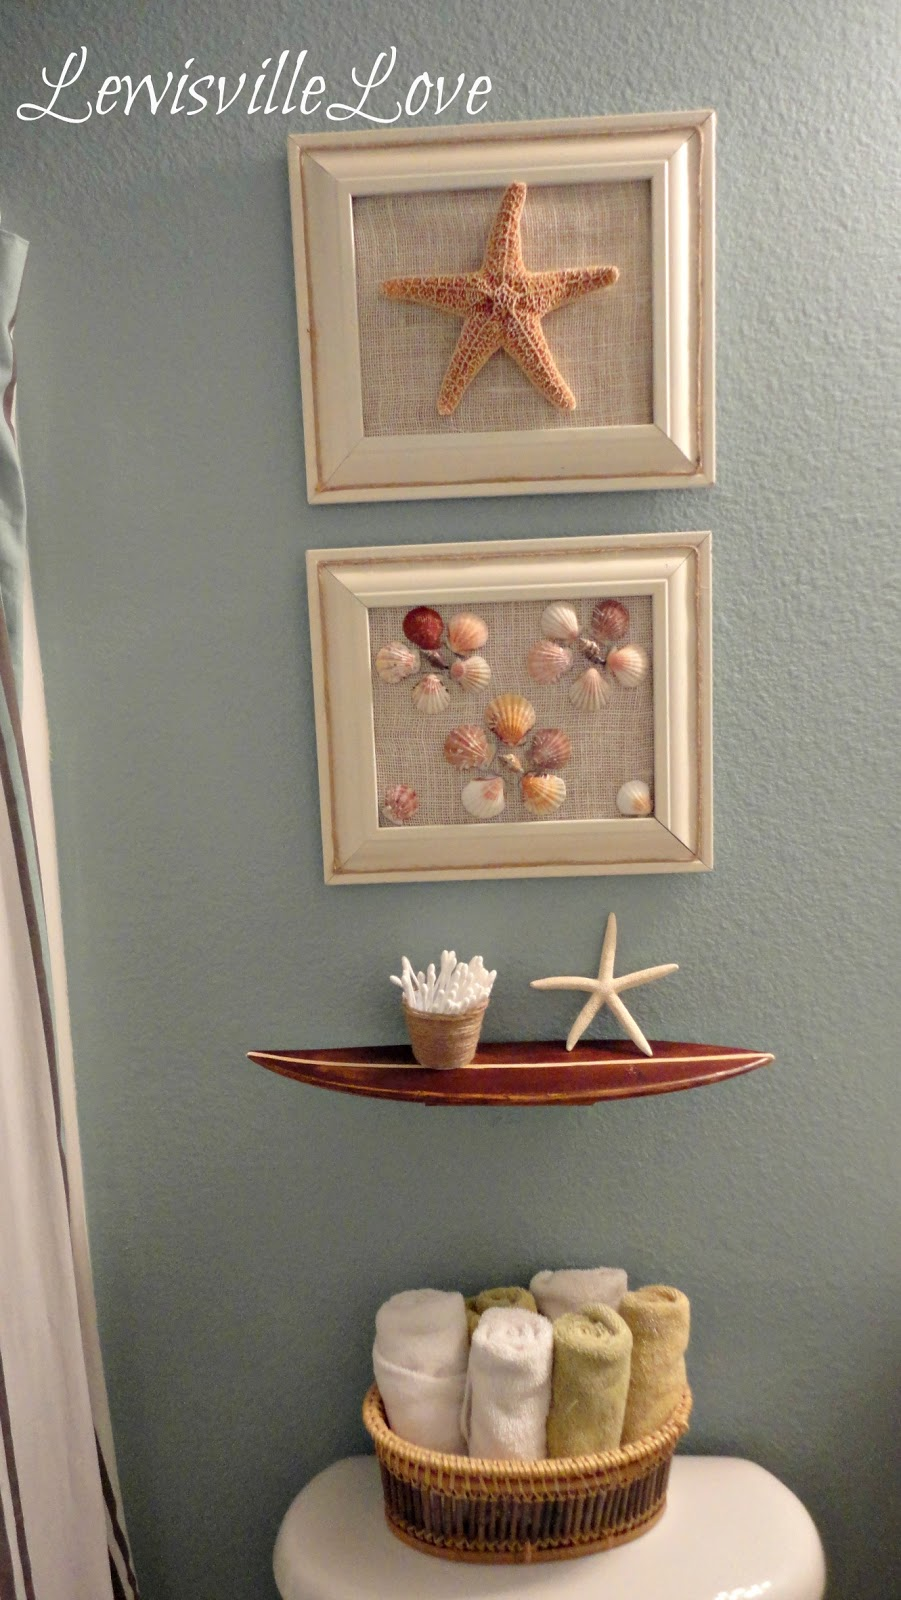 Rustic beach themed bathroom - White Nautical Beach Shelf Bathroom Shelf Beach Crate Shelf Beach Shelf Nautical Shelf Beach Decor Bathroom Storage Lake House Decor Shabby Chic